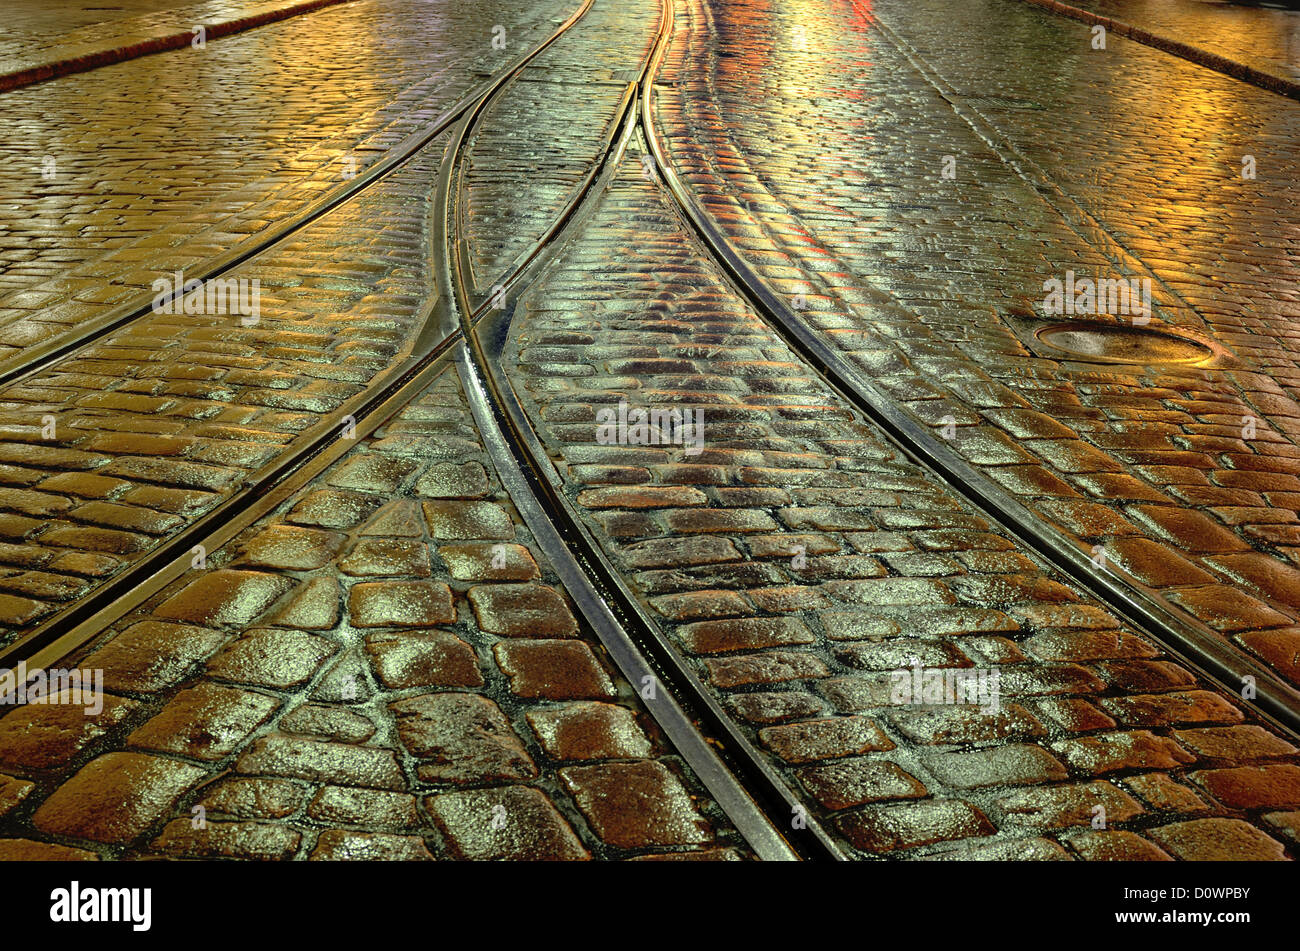 old stone pavement and the tram rails - Stock Image